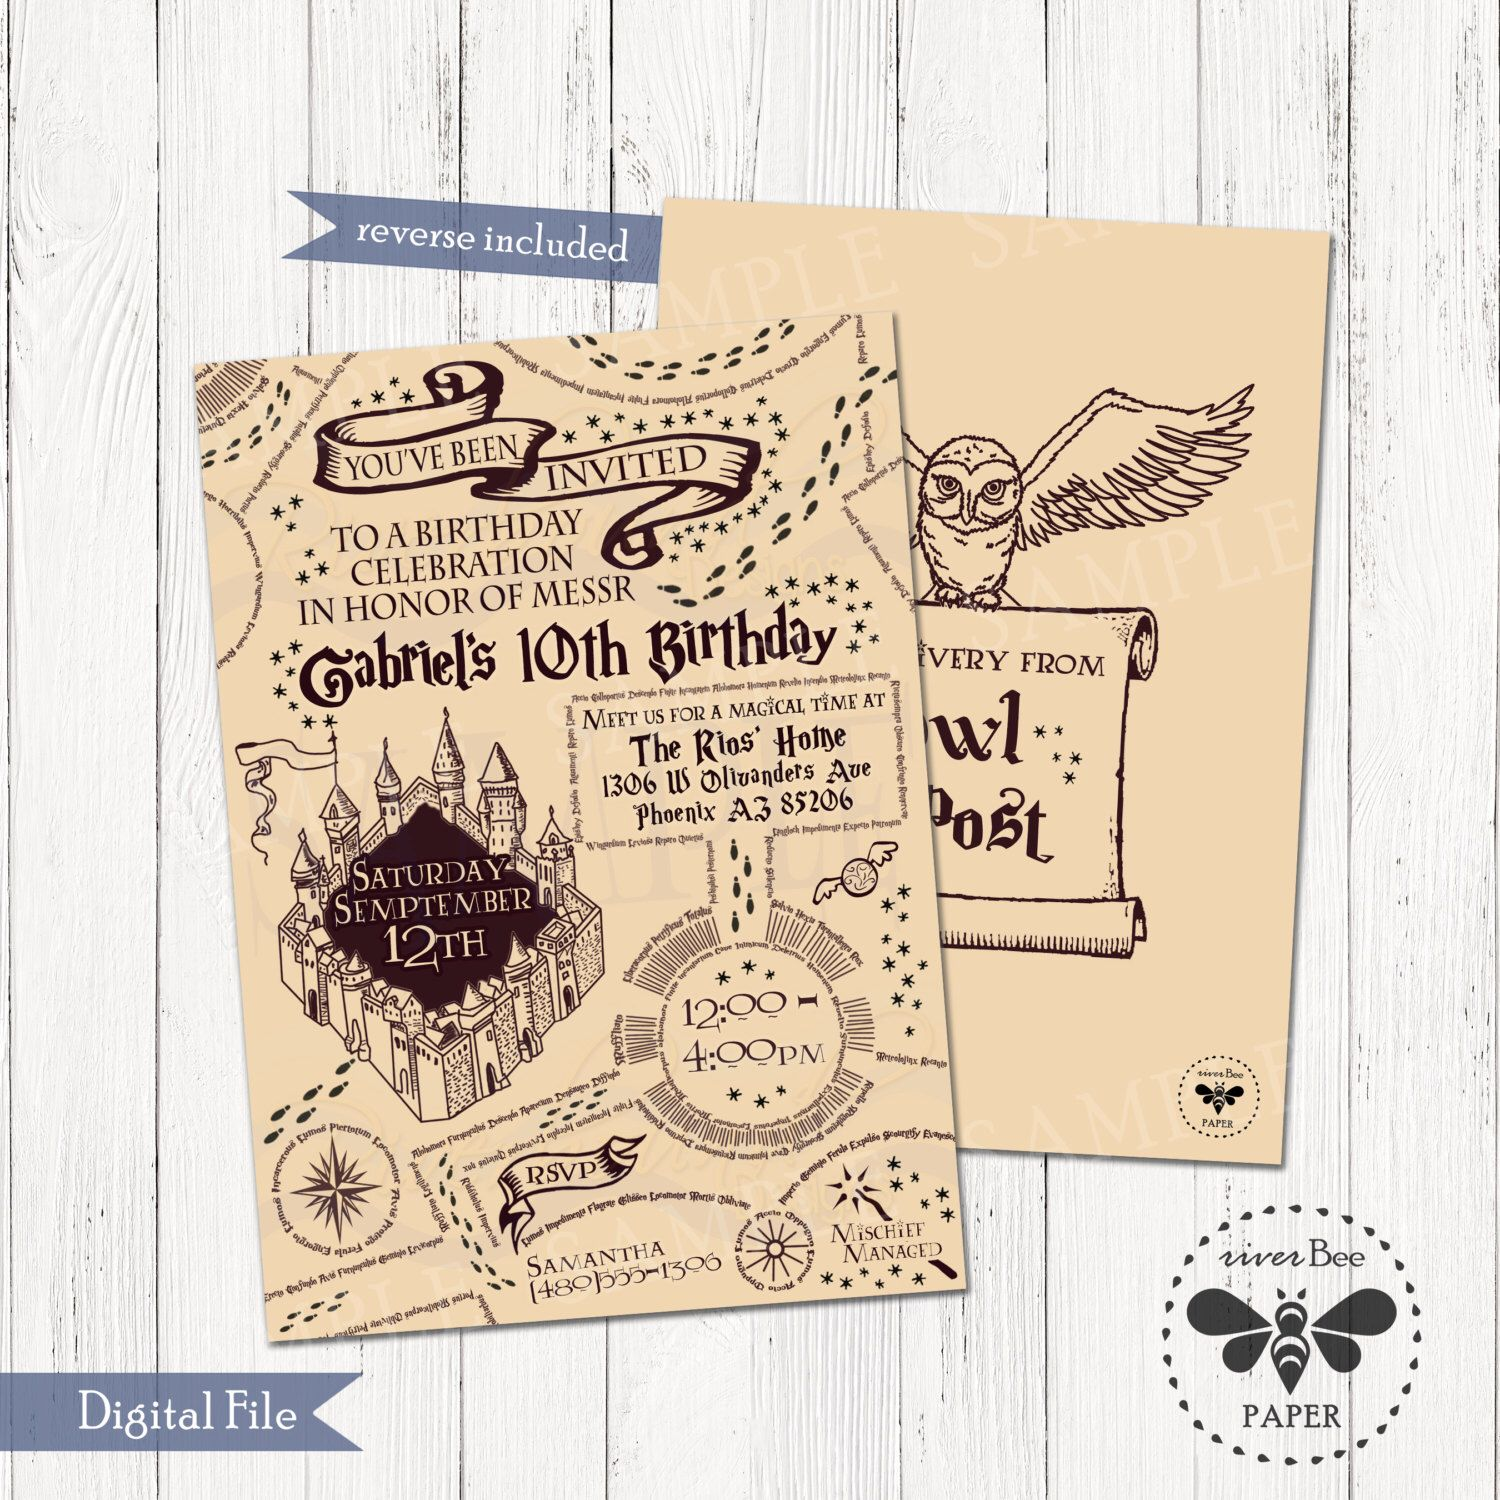 image about Harry Potter Marauders Map Printable called Marauders map invitation